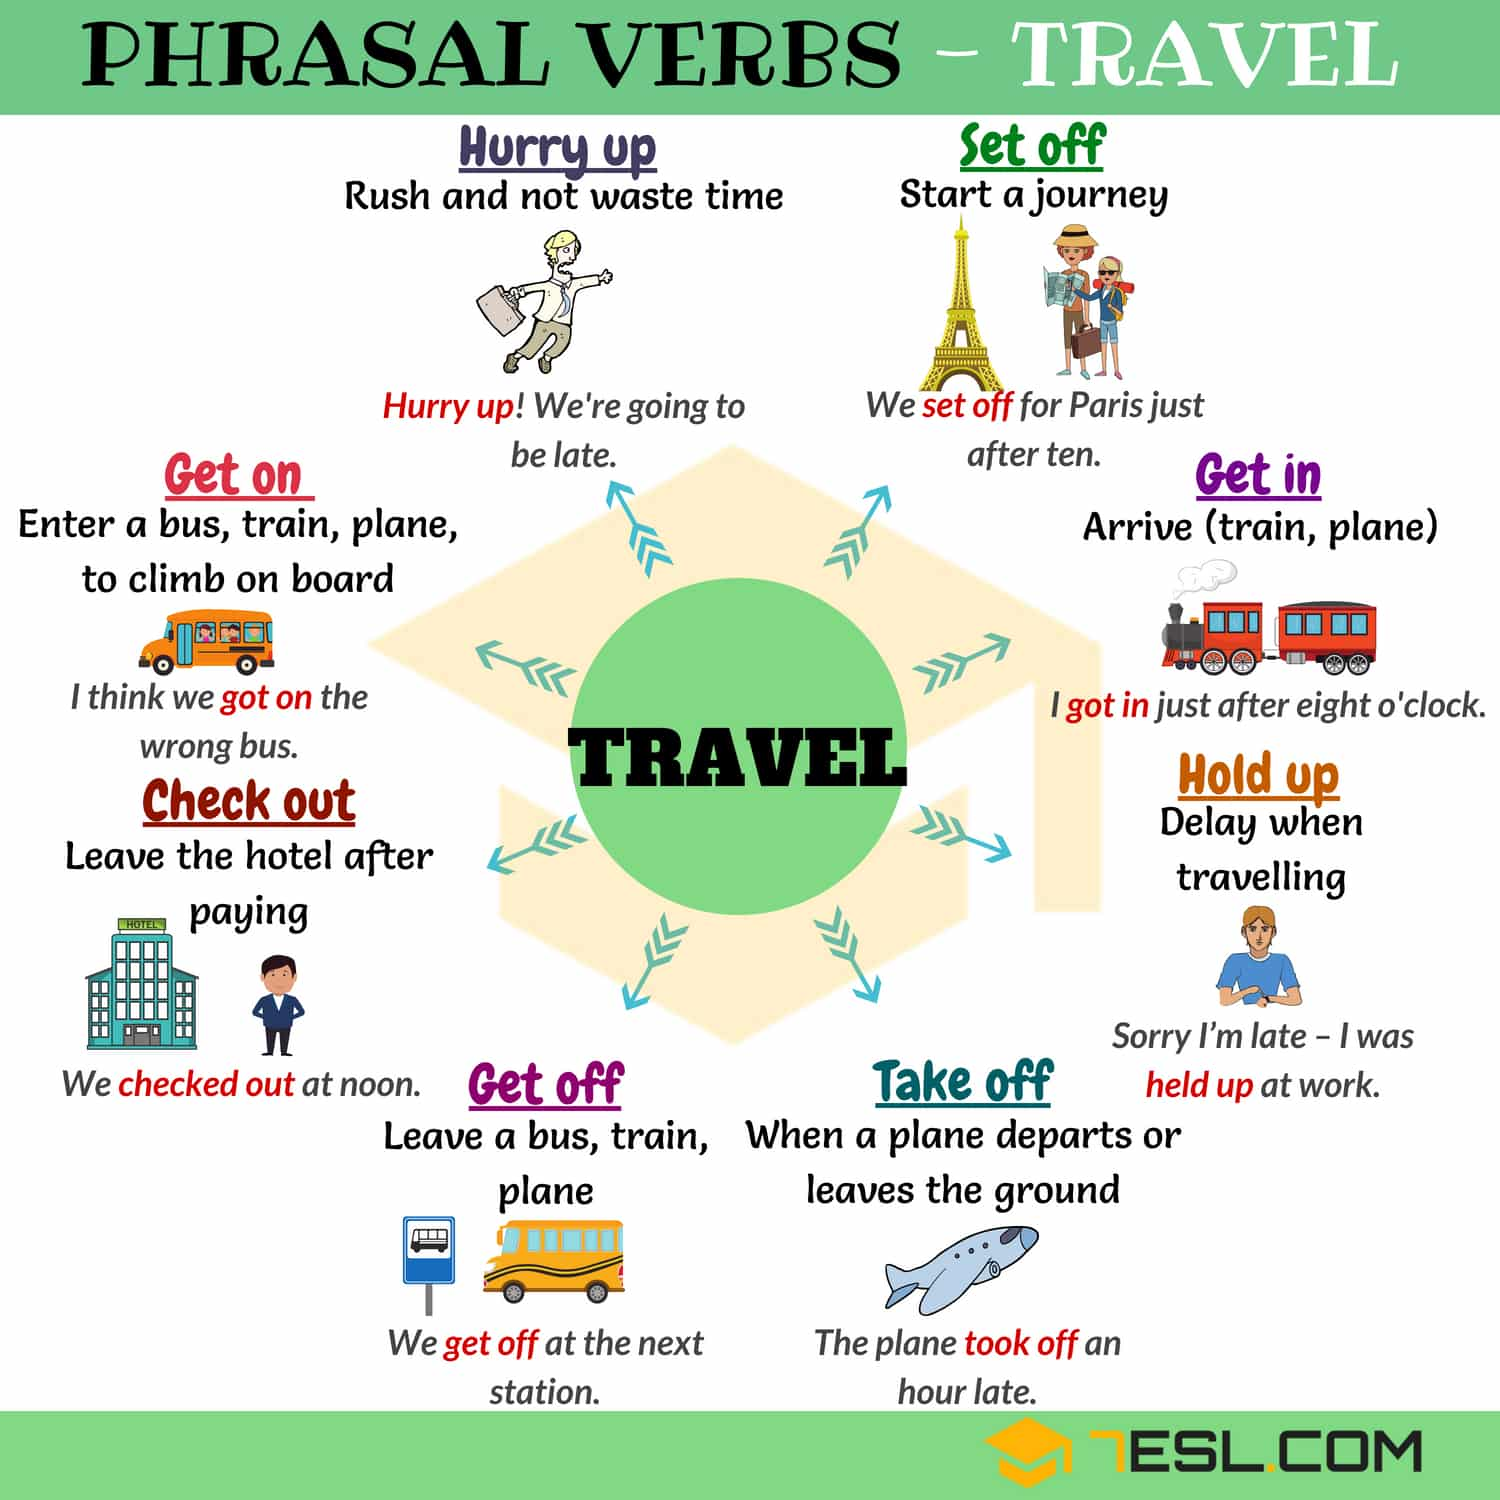 phrasal verbs for Travel